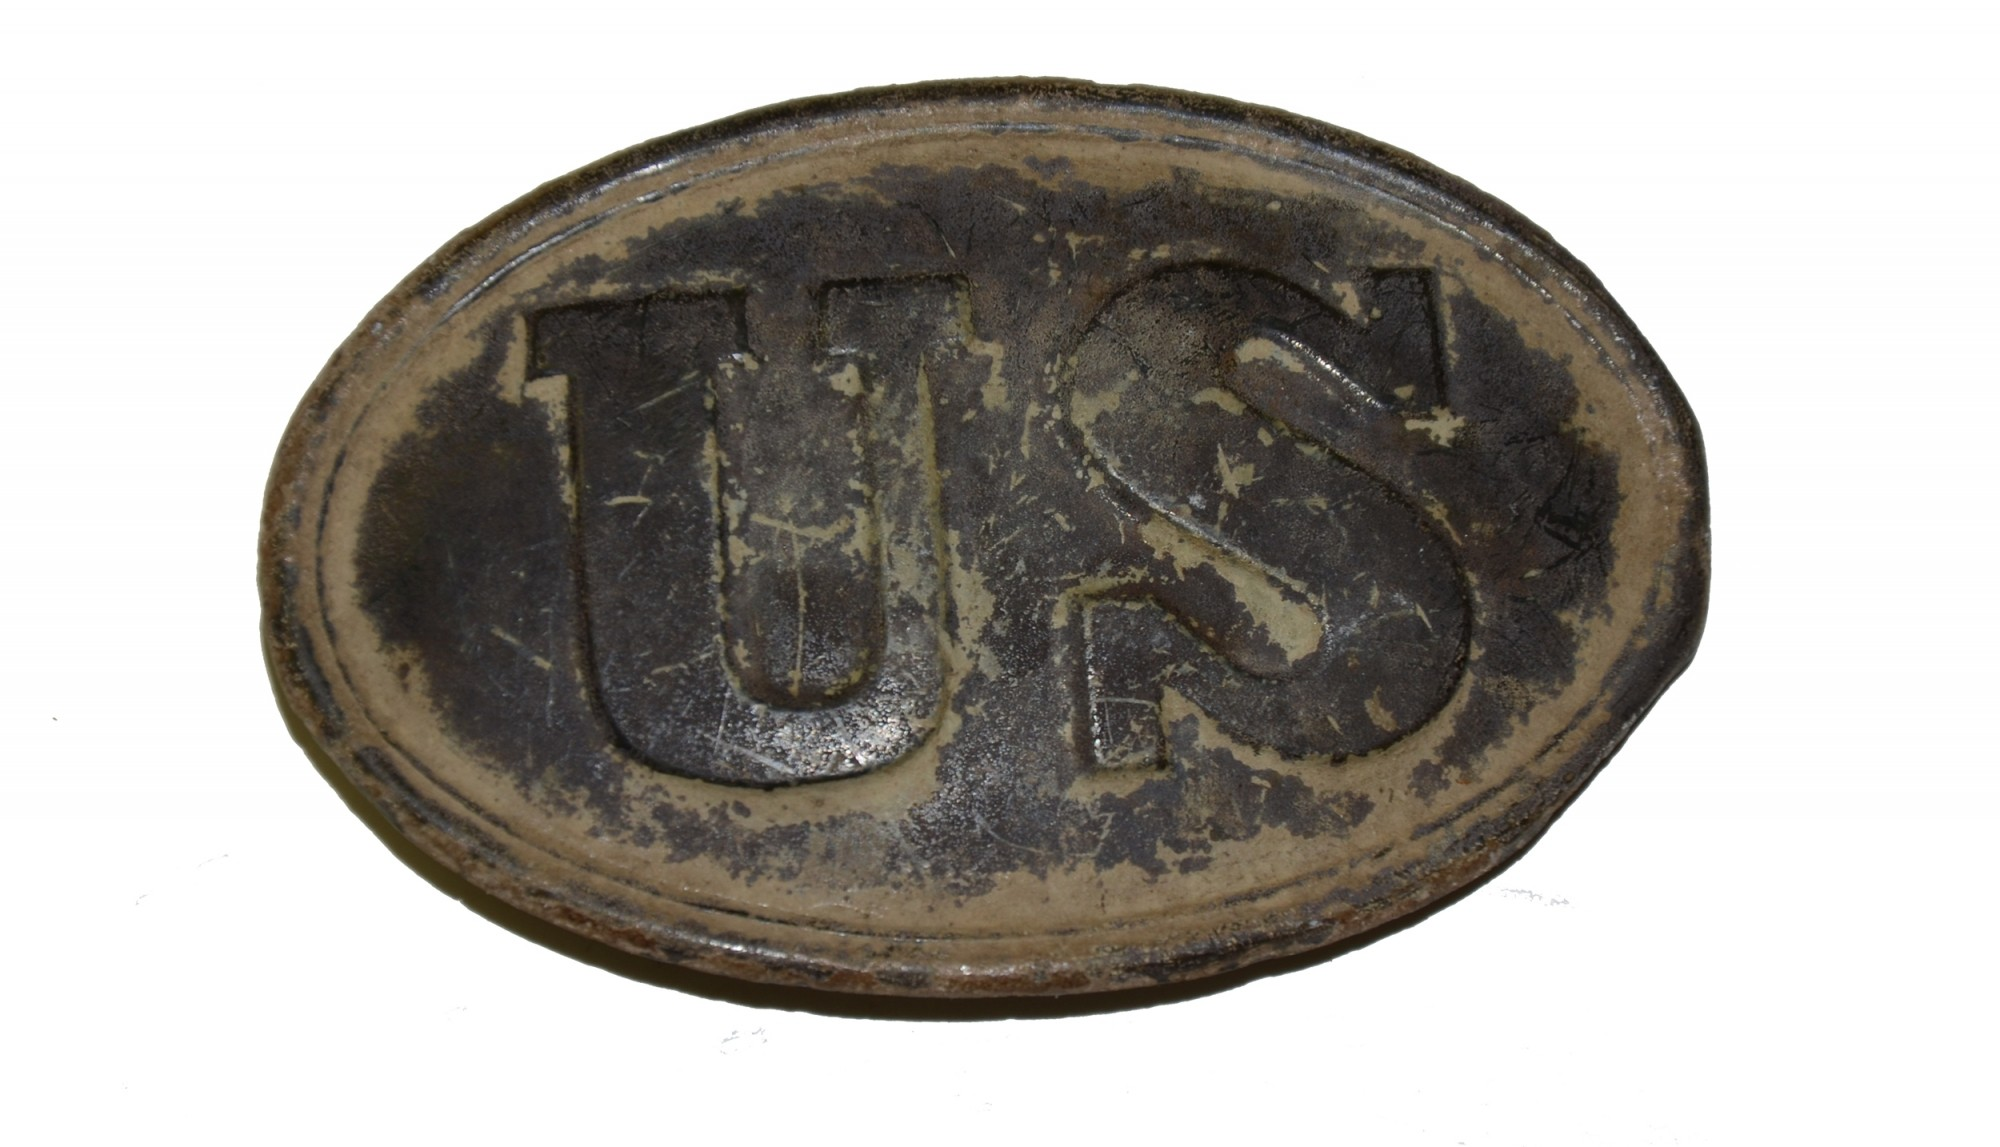 US PATTERN 1839 BELT PLATE FOUND ON POWERS' HILL AT GETTYSBURG